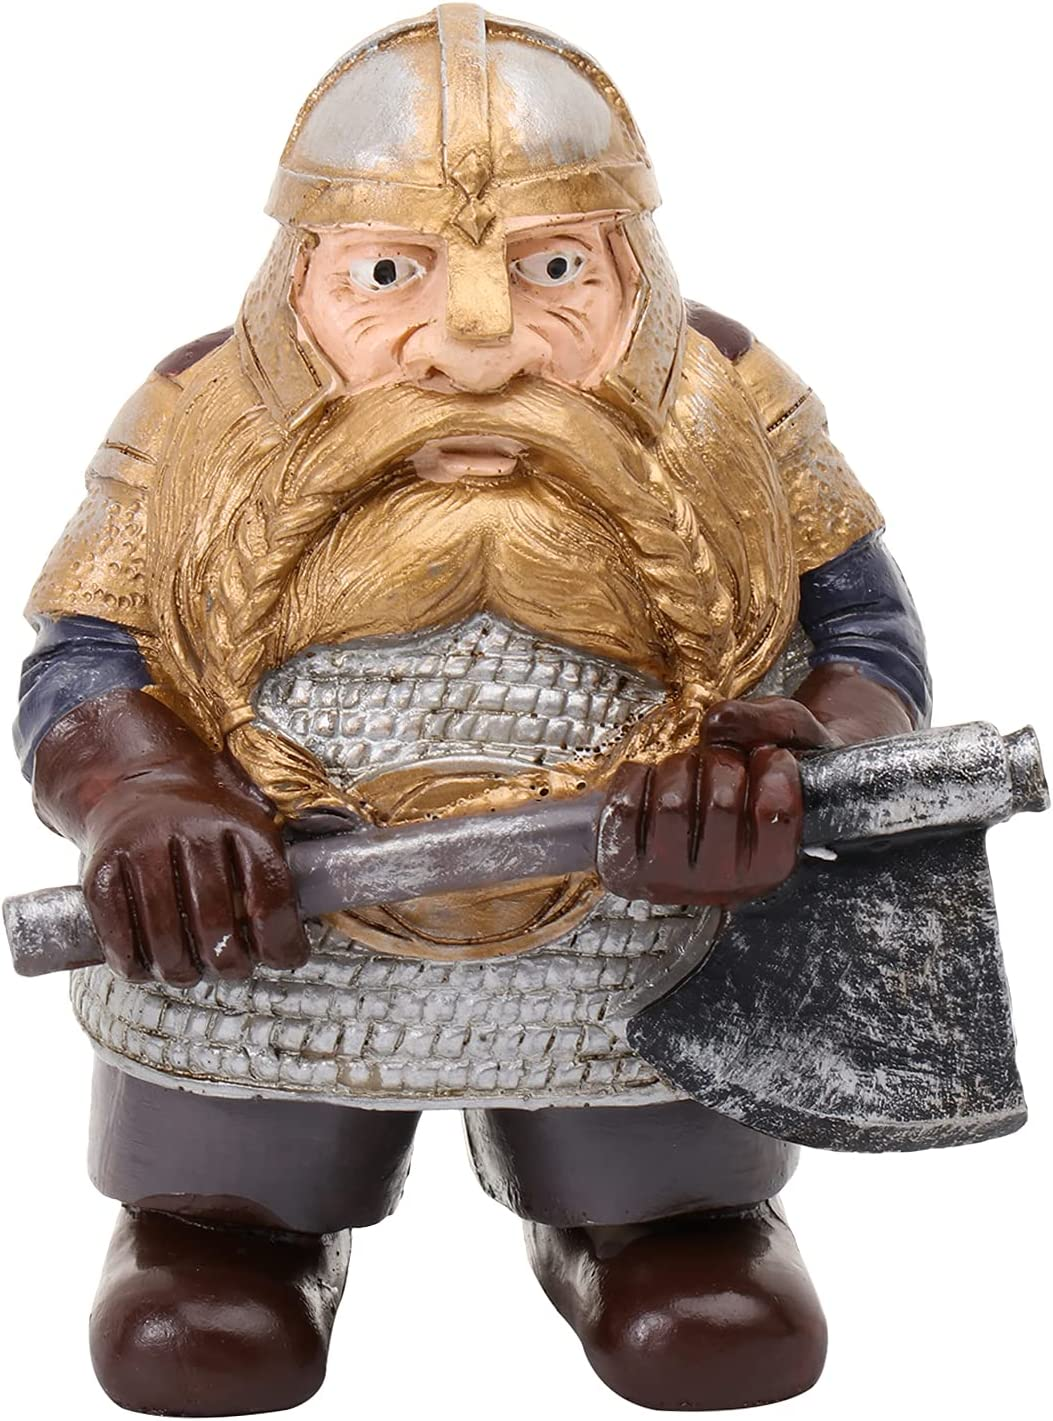 Viking Victor Norse Dwarf Gnome Statue, Ornaments Viking Garden Gnome Full Color Decoration for Home Yard Lawn,Gnome Figurines for Indoor Outdoor Home Yard Decor